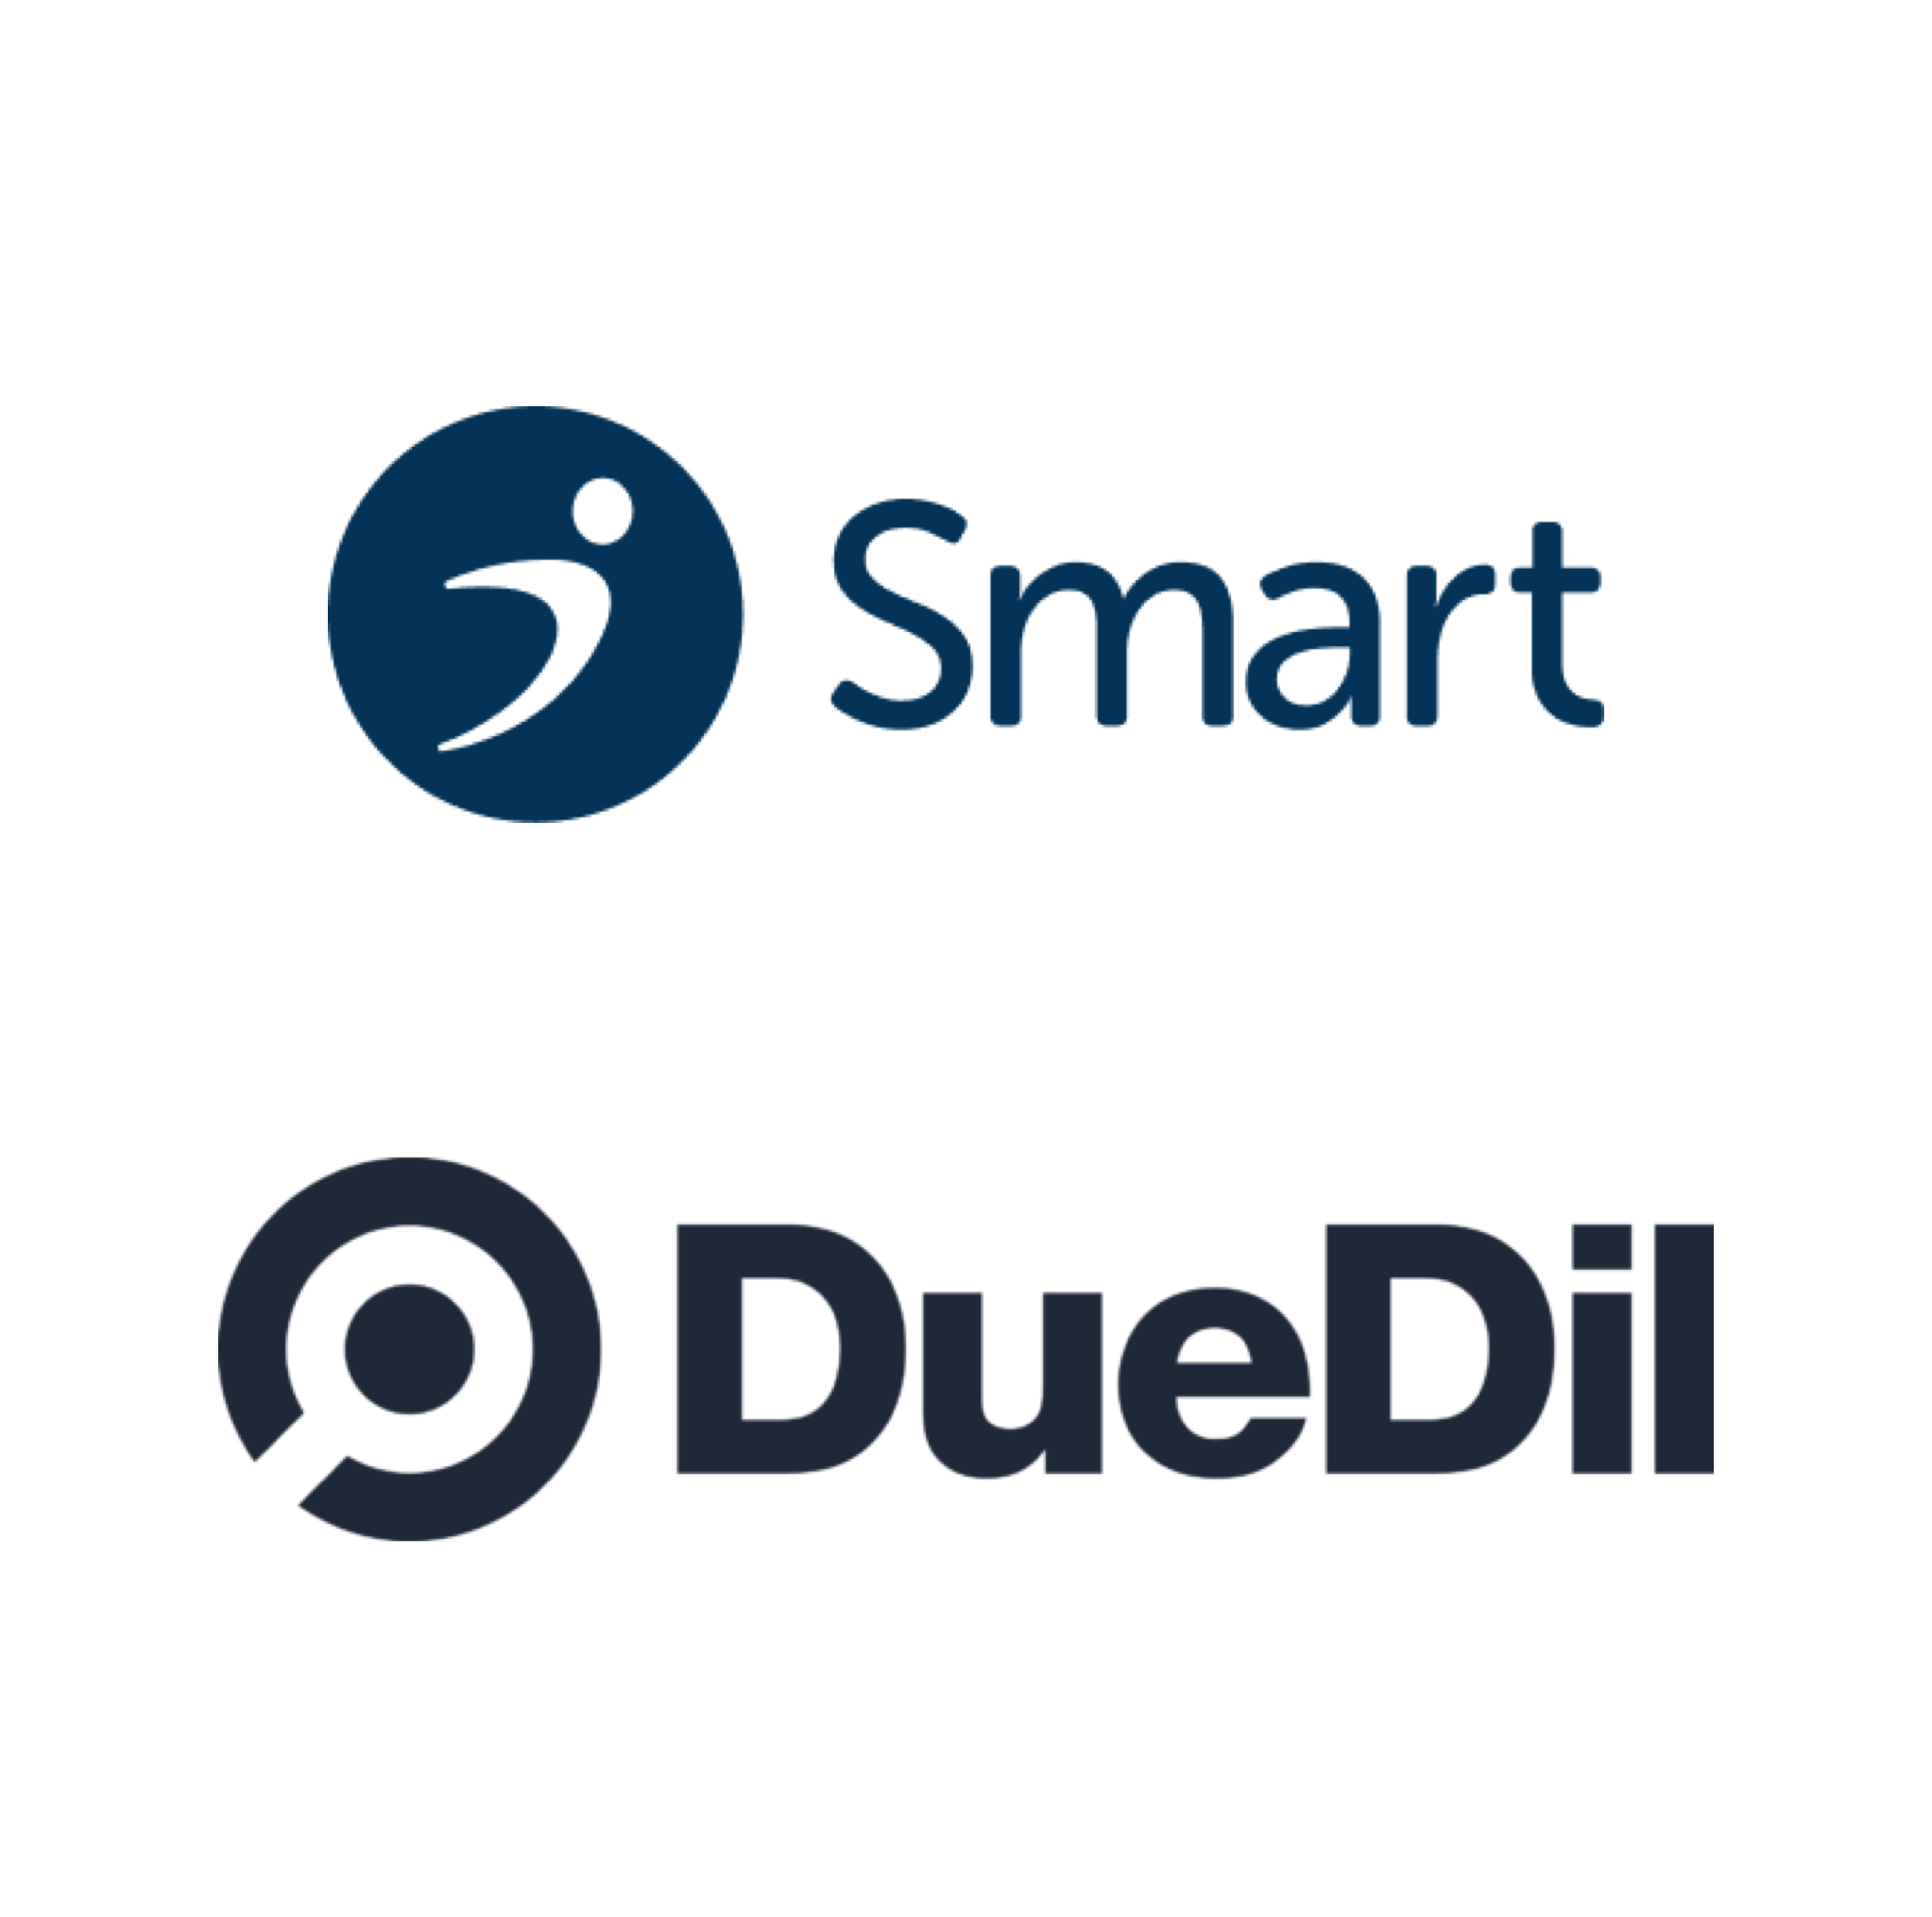 DueDil and Smart announce new partnership as part of Smart's global strategy